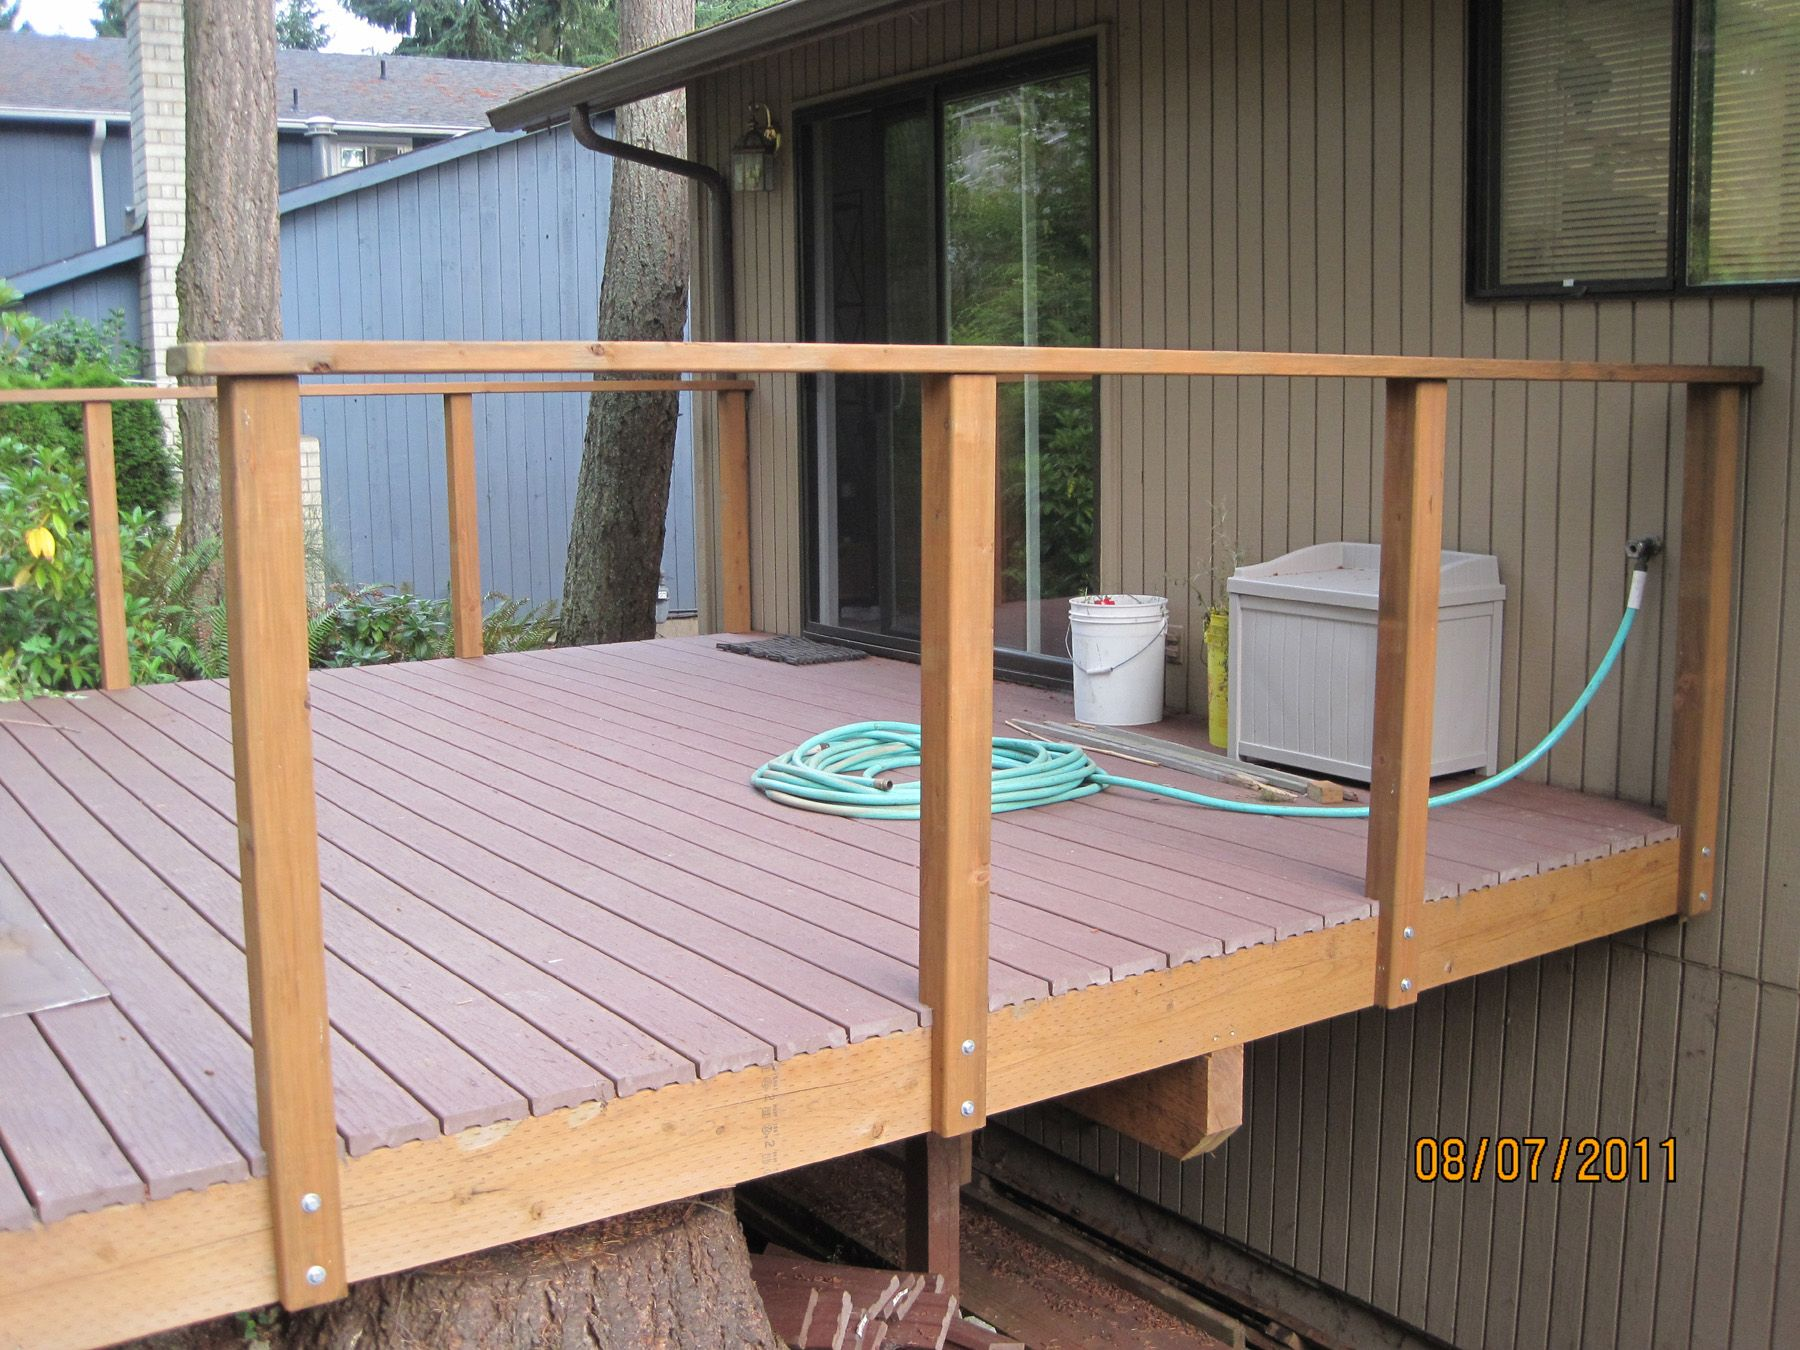 Best The Deck Railings Are Up Deck Railing Design Deck 400 x 300